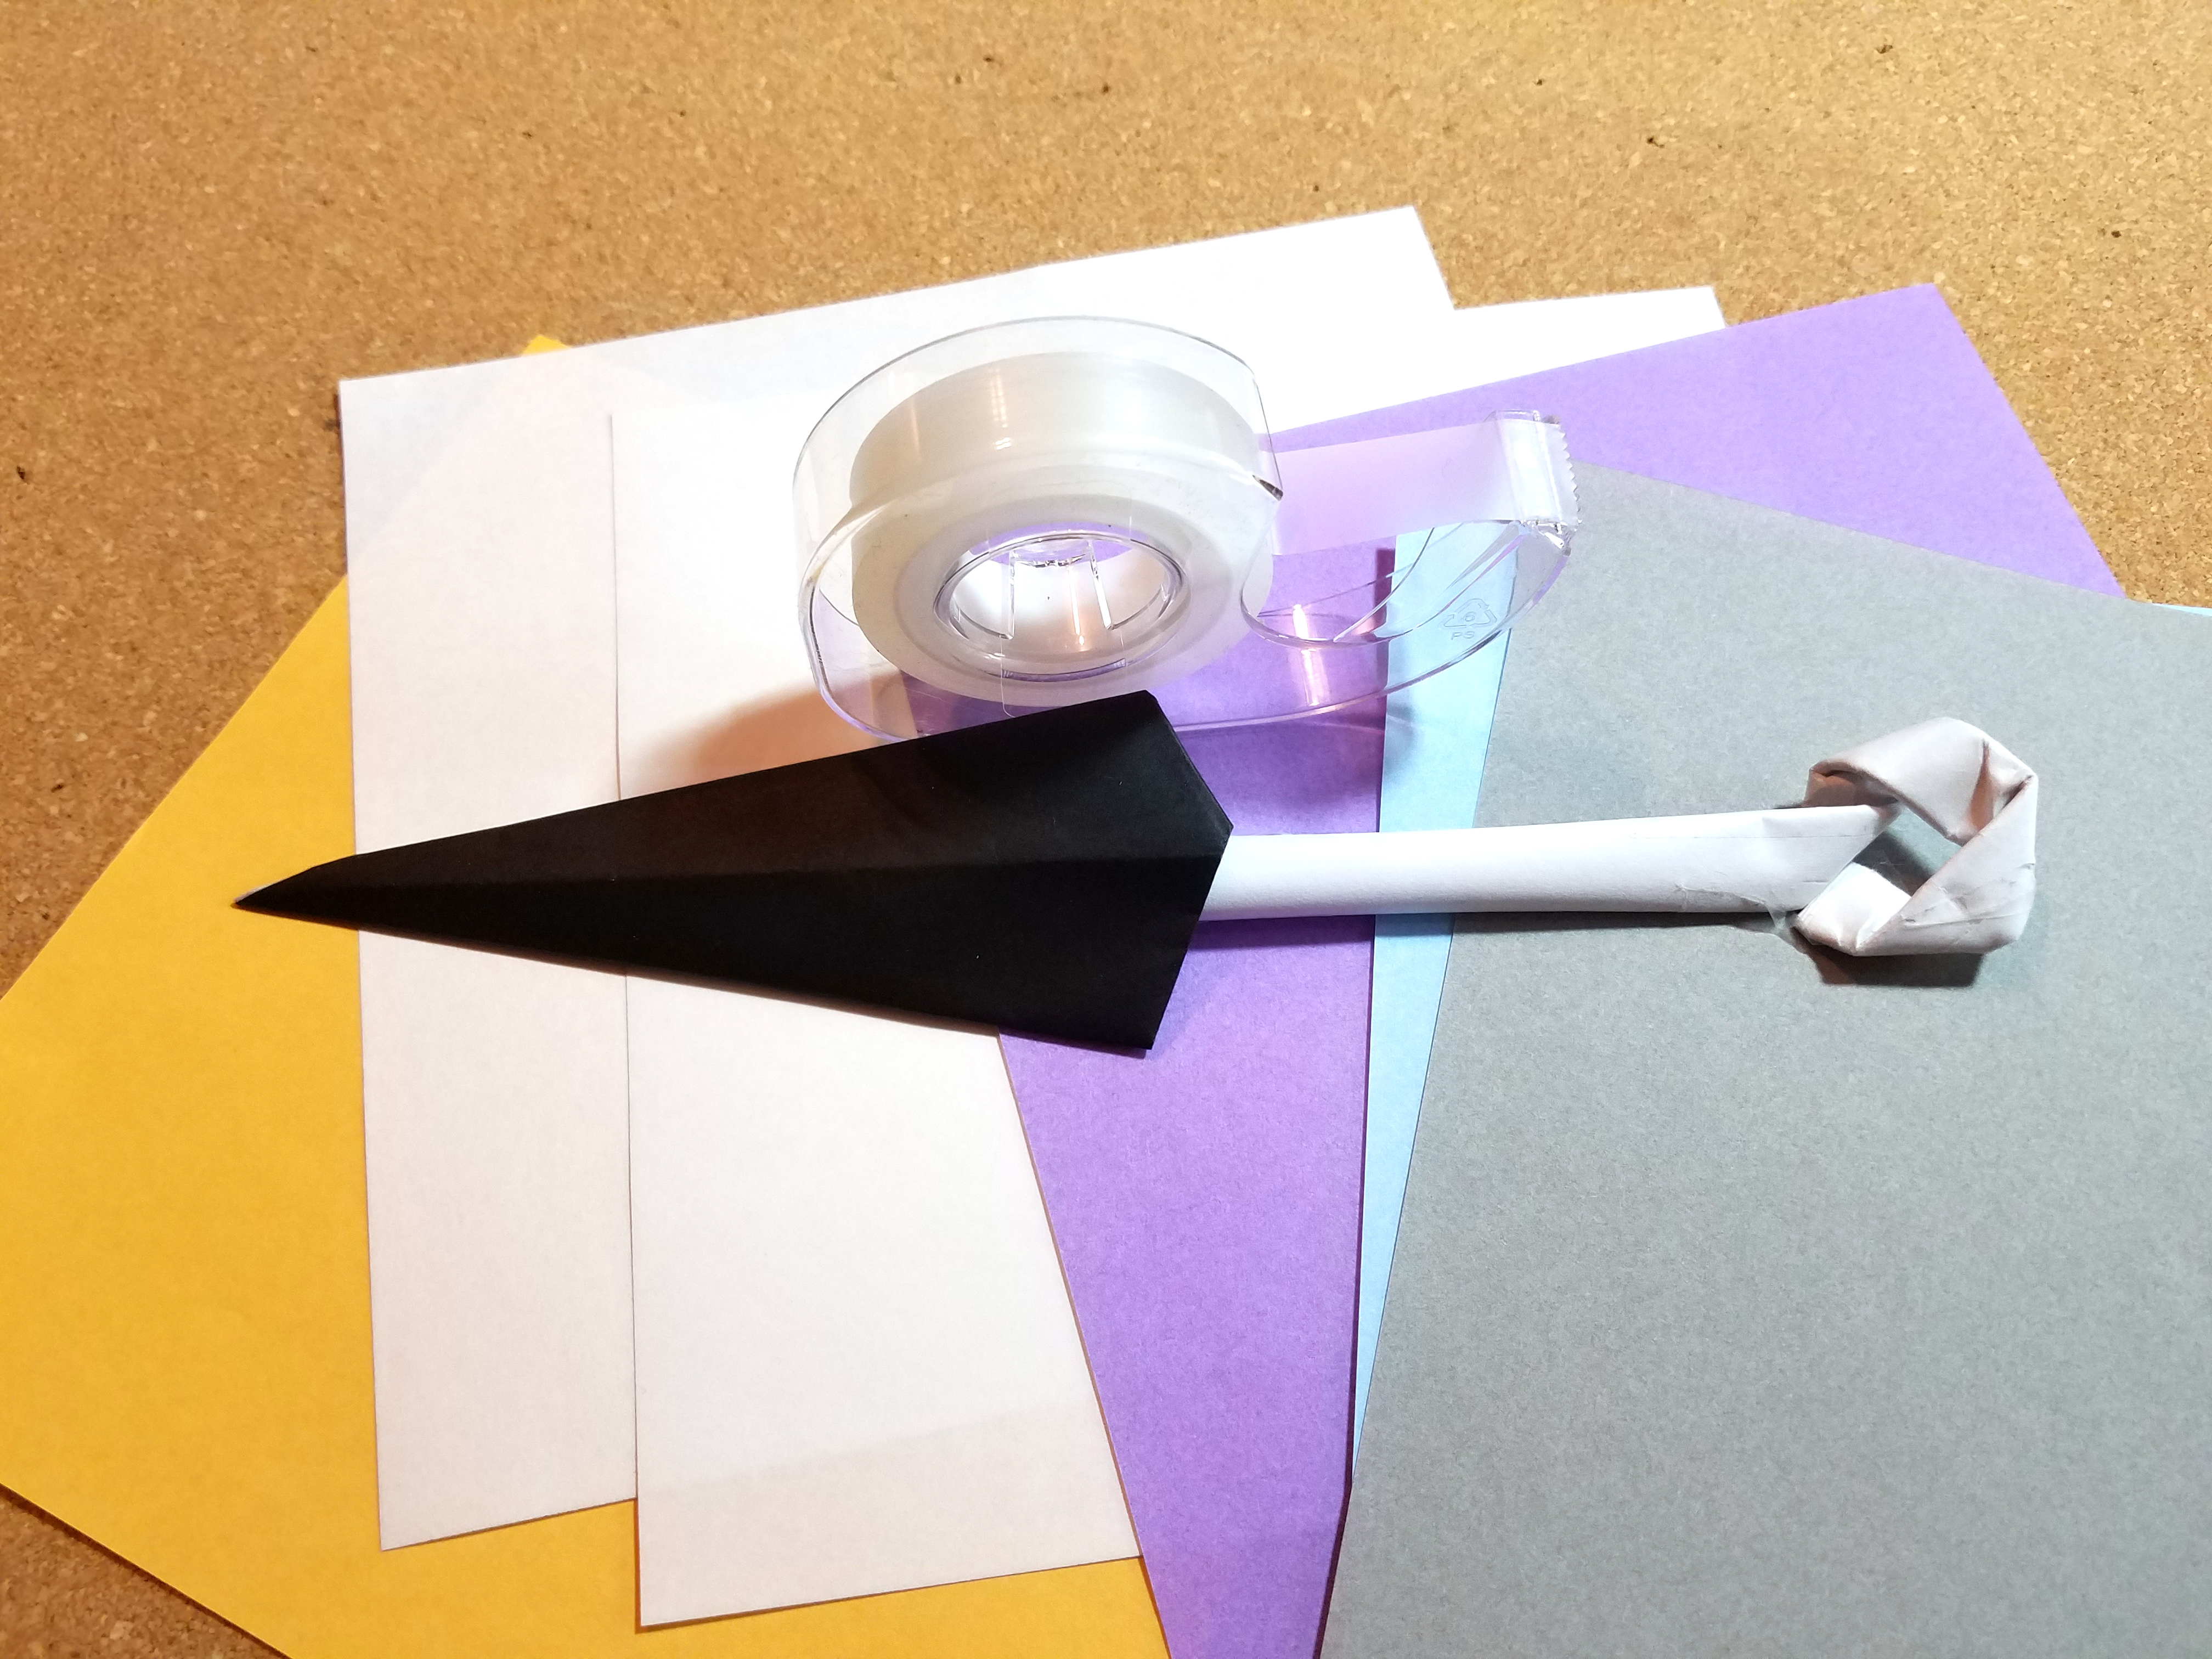 How To Make A Paper Knife Fold An Origami Sword